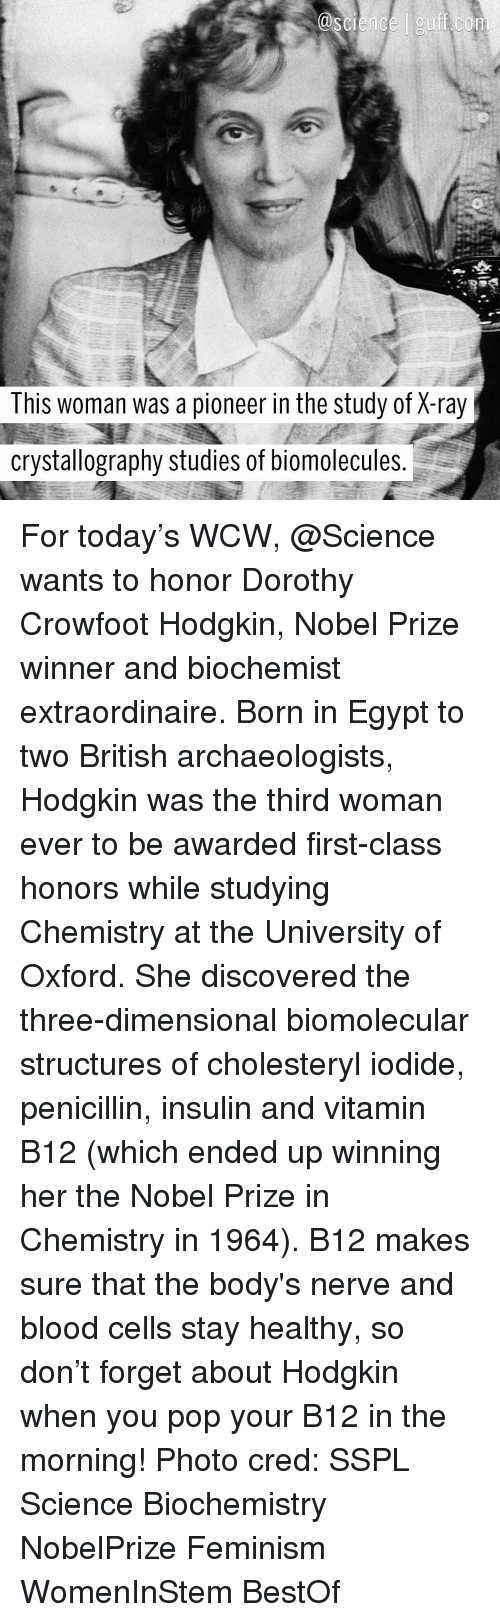 Bloods, Memes, and Nobel Prize: This woman was a pioneer in the study of X-ray  crystallography studies of biomolecules For today's WCW, @Science wants to honor Dorothy Crowfoot Hodgkin, Nobel Prize winner and biochemist extraordinaire. Born in Egypt to two British archaeologists, Hodgkin was the third woman ever to be awarded first-class honors while studying Chemistry at the University of Oxford. She discovered the three-dimensional biomolecular structures of cholesteryl iodide, penicillin, insulin and vitamin B12 (which ended up winning her the Nobel Prize in Chemistry in 1964). B12 makes sure that the body's nerve and blood cells stay healthy, so don't forget about Hodgkin when you pop your B12 in the morning! Photo cred: SSPL Science Biochemistry NobelPrize Feminism WomenInStem BestOf